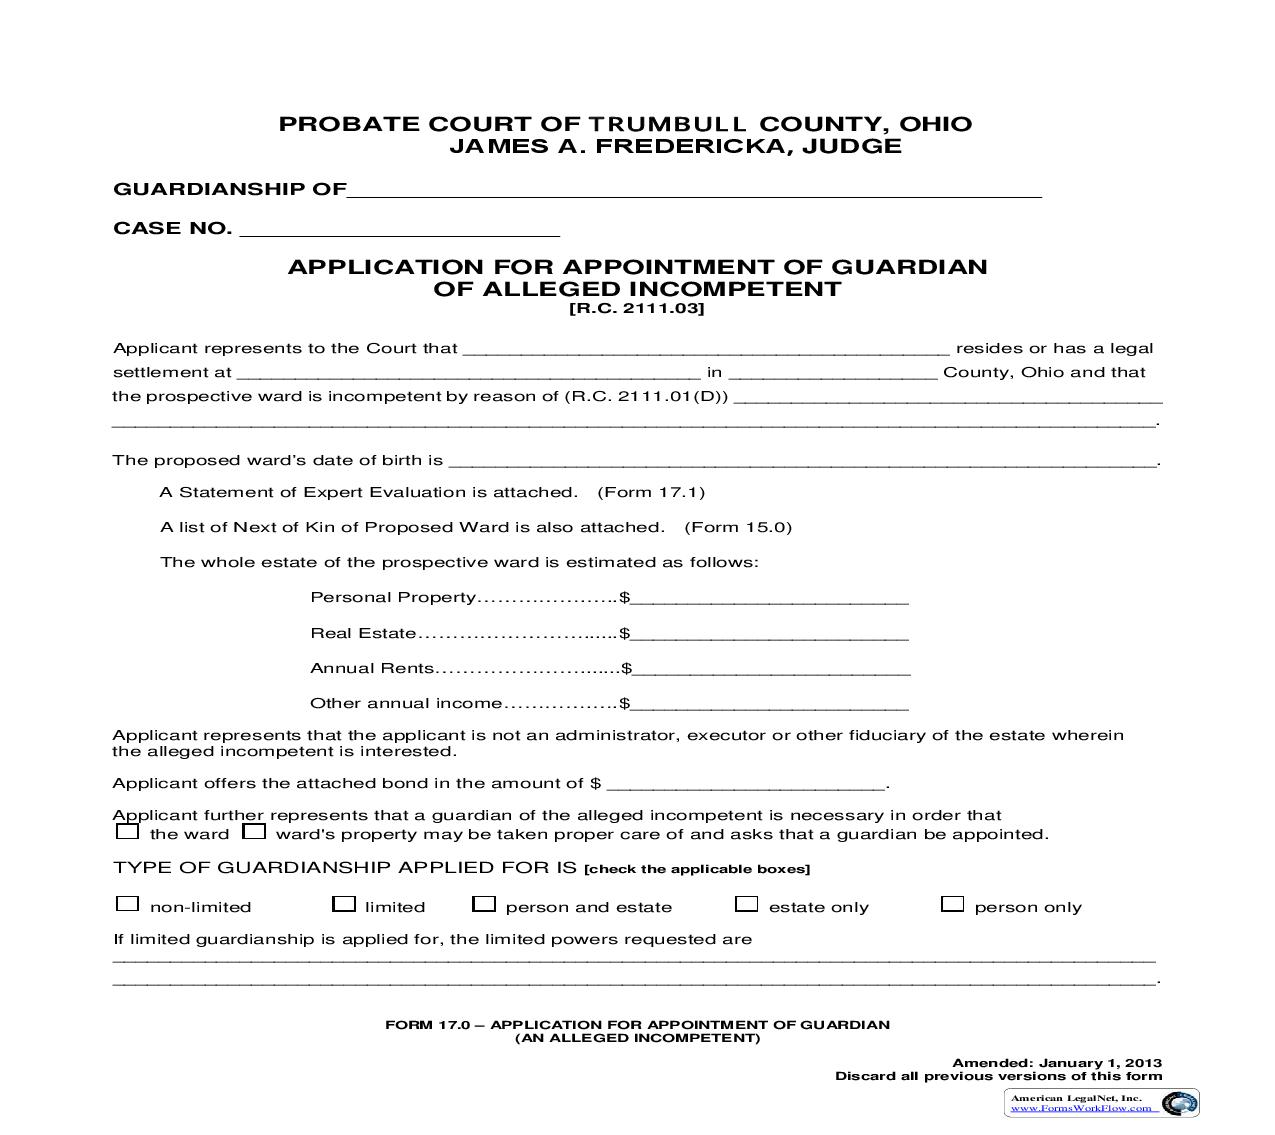 Application For Appointment Of Guardian Of Alleged Incompetent (Trumbull) {17.0} | Pdf Fpdf Doc Docx | Ohio